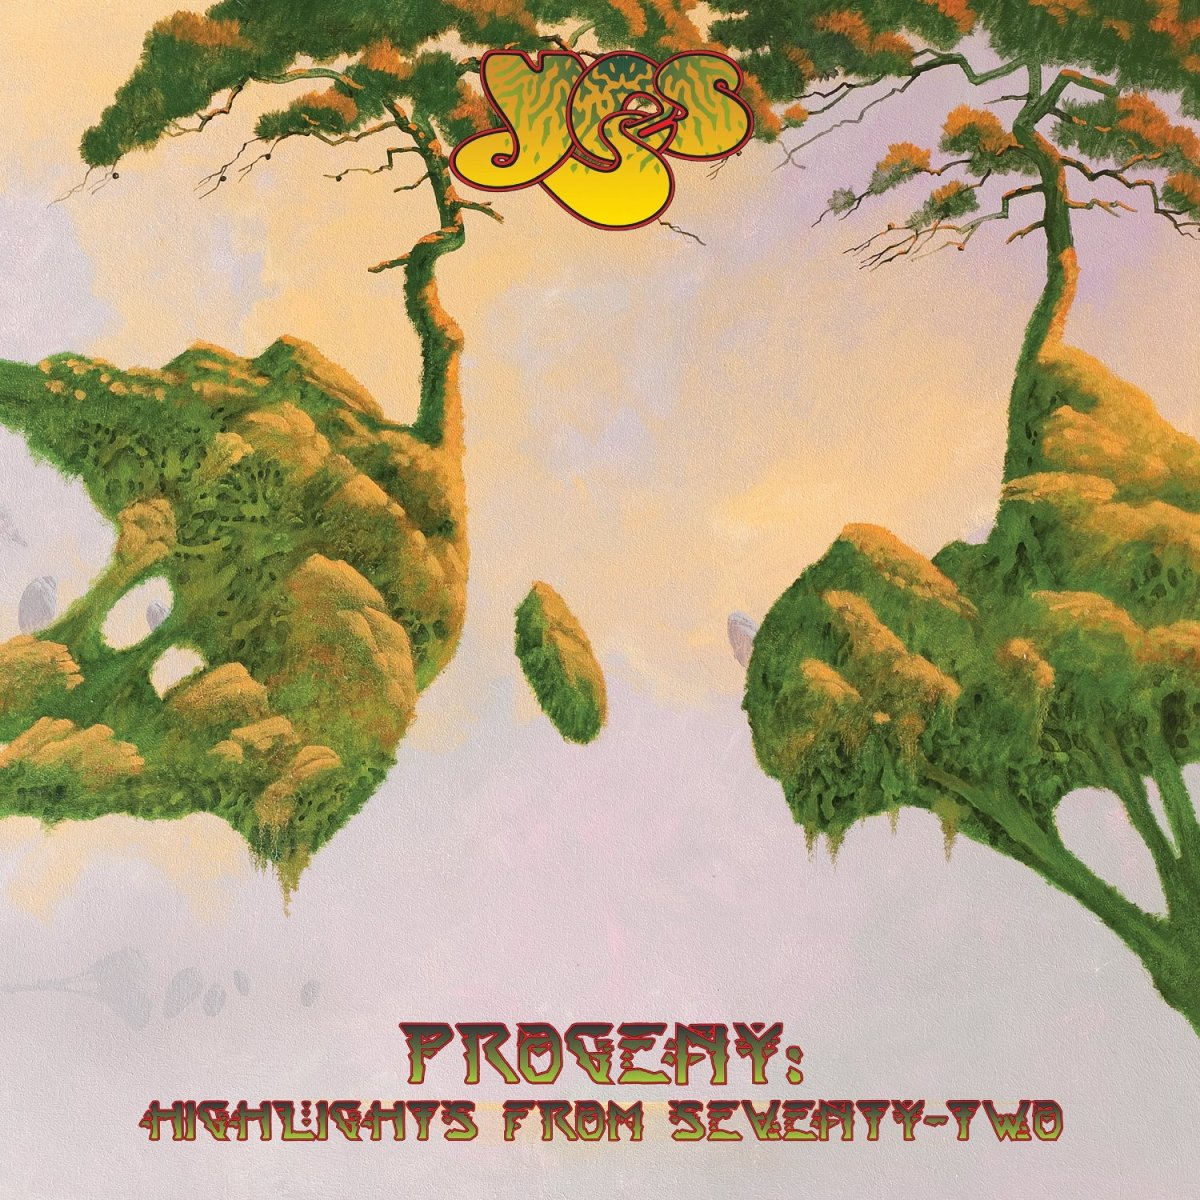 "Yes ""Porgeny: Highlights from Seventy-Two"" Atlantic Records 241104 3-12"" LP Vinyl Record Set, US Pressing (2015) Album Cover Art by Roger Dean"